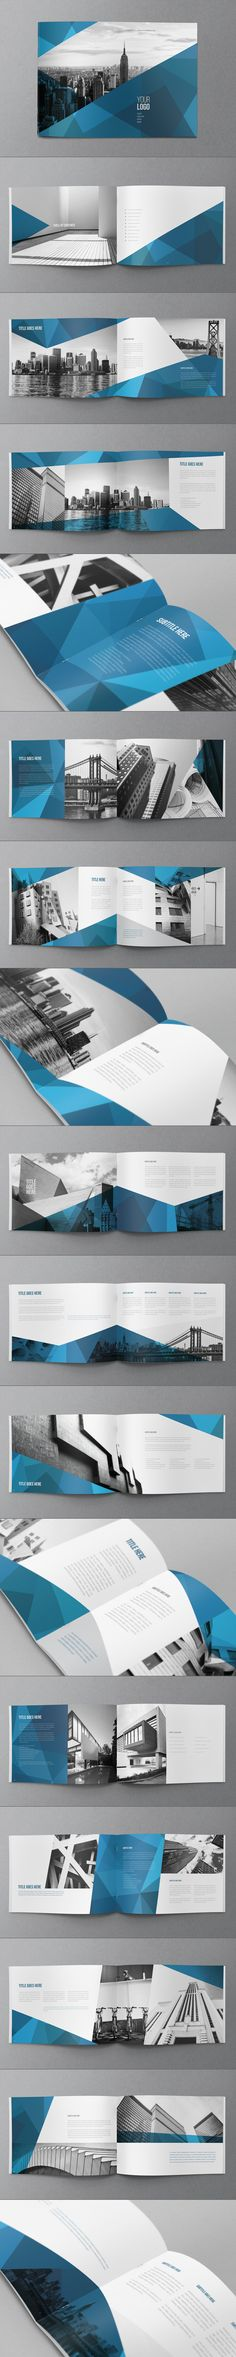 Abstract Architecture Brochure by Abra Design, via Behance // identity, branding, graphic Graphisches Design, Buch Design, Layout Design, Design Elements, Modern Design, Brochure Design Inspiration, Layout Inspiration, Corporate Design, Portfolio Design